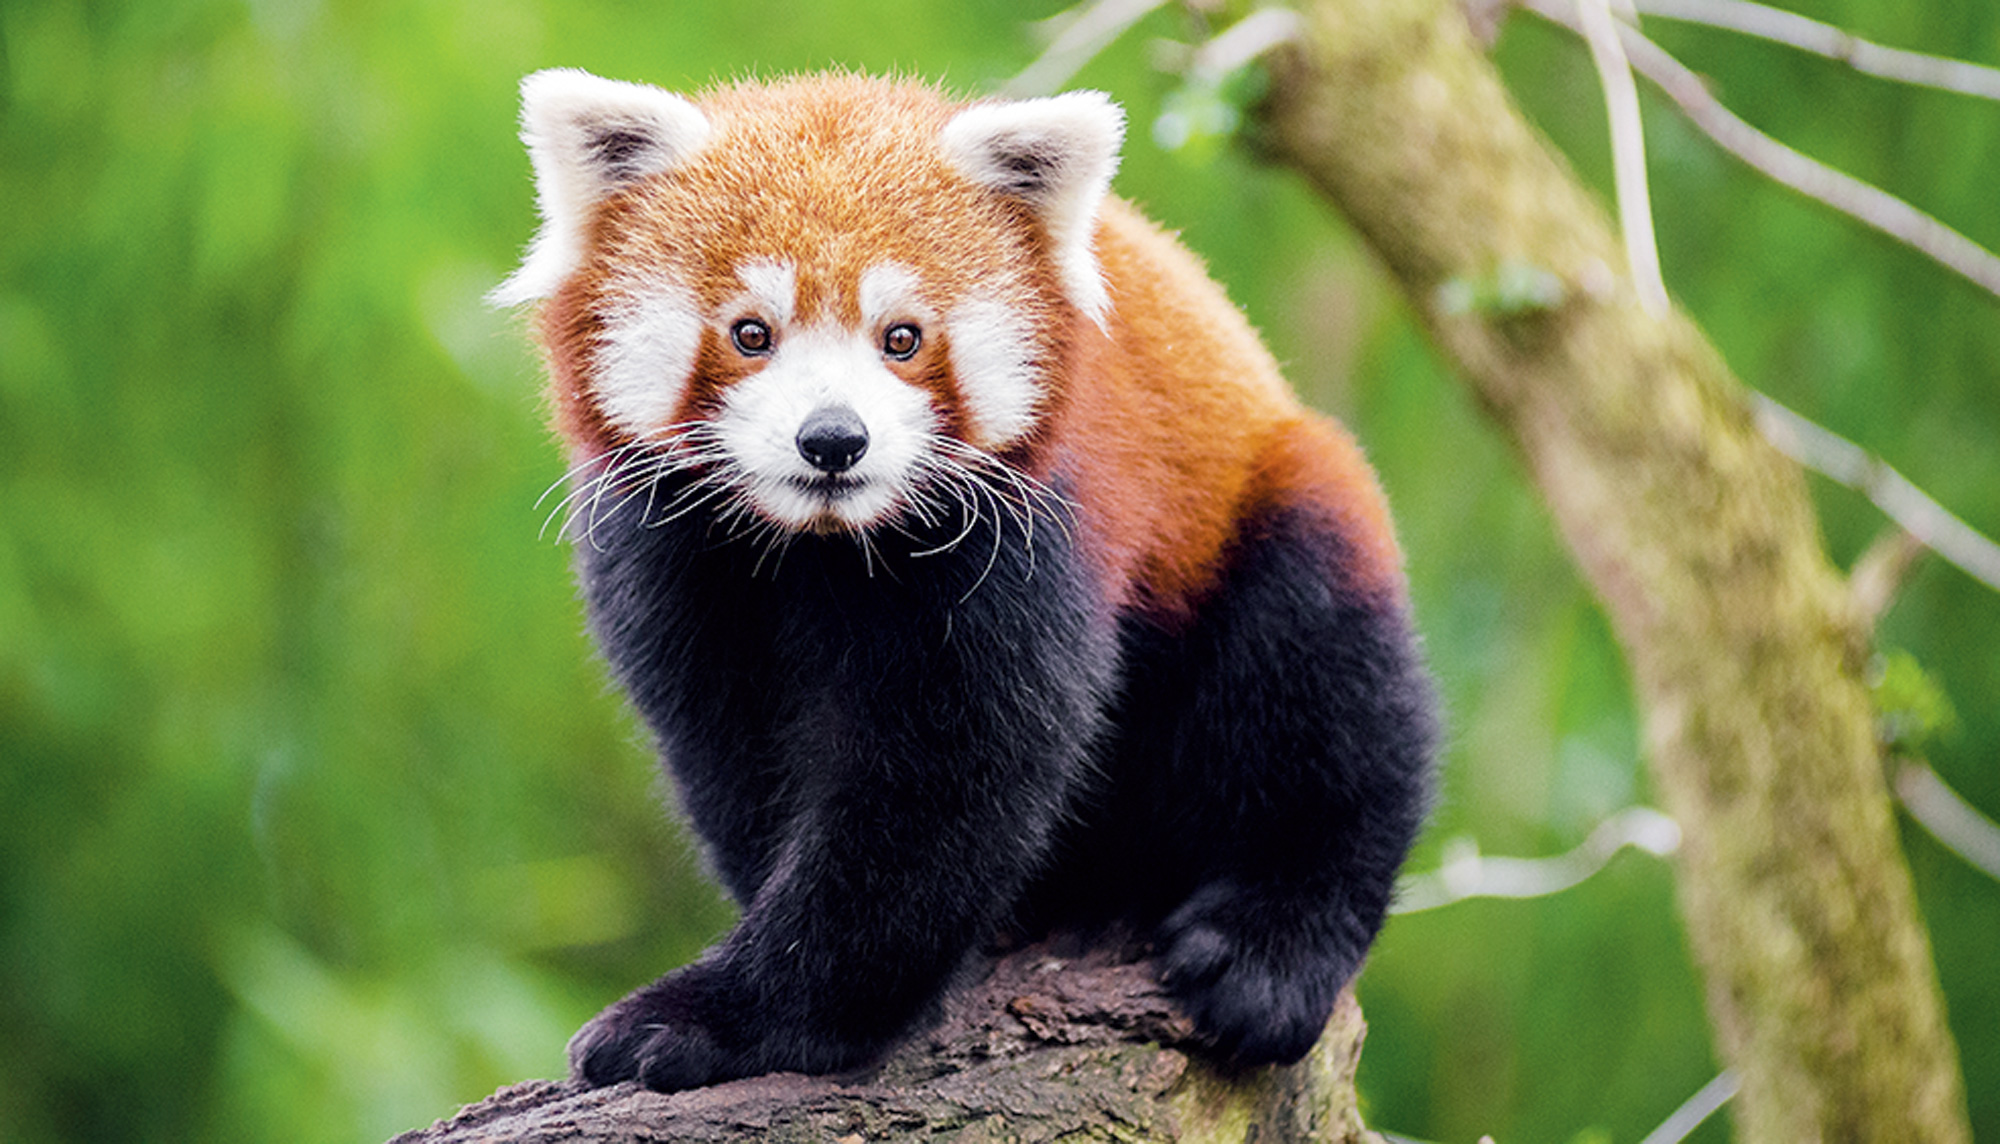 The red panda has been classified as 'vulnerable' by the International Union for Conservation of Nature Red List of Threatened Species